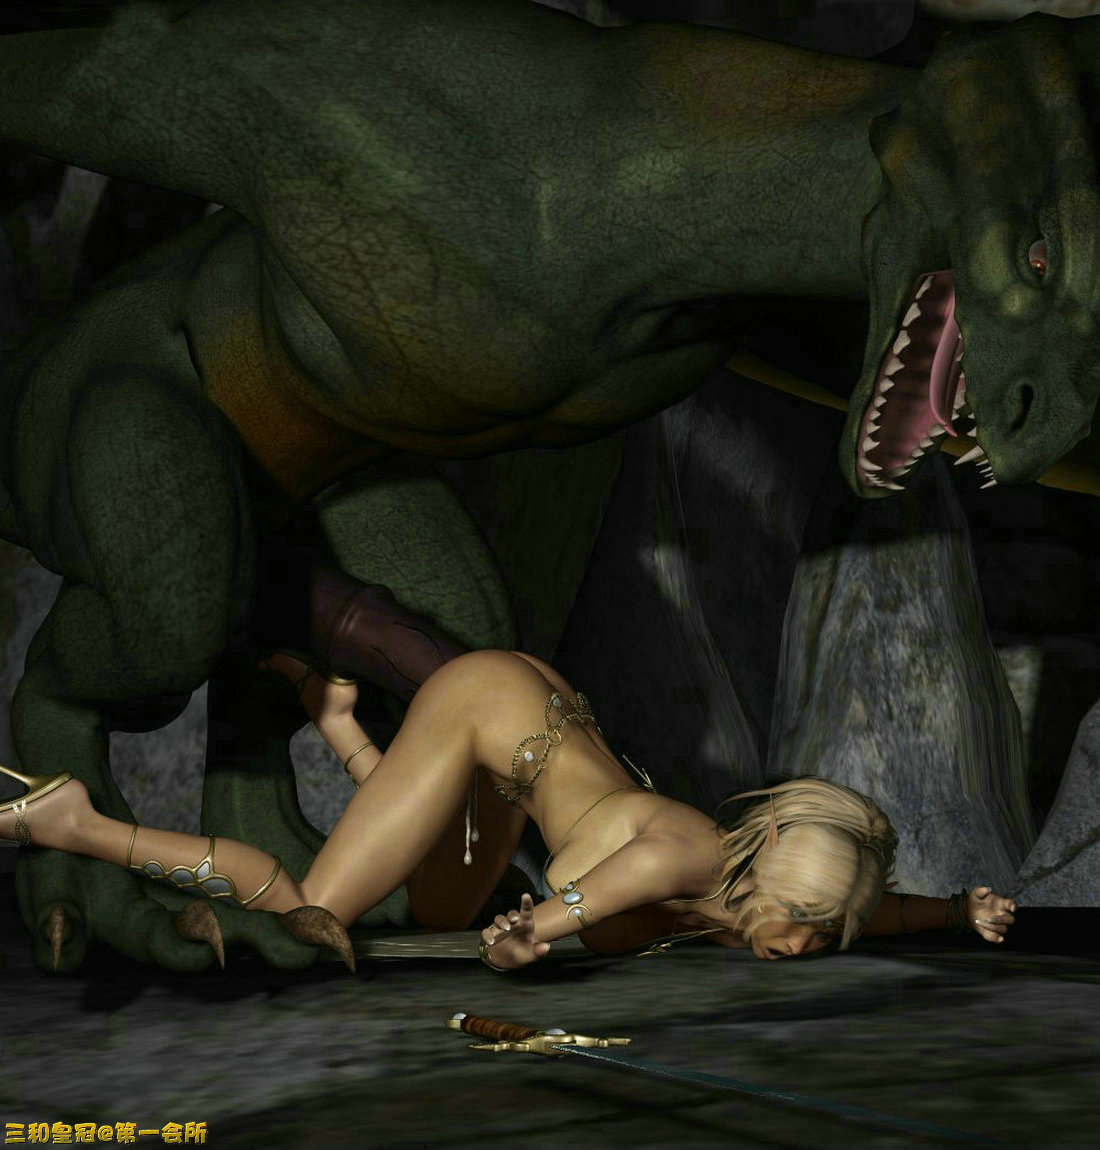 3d dragon porno videos erotic image